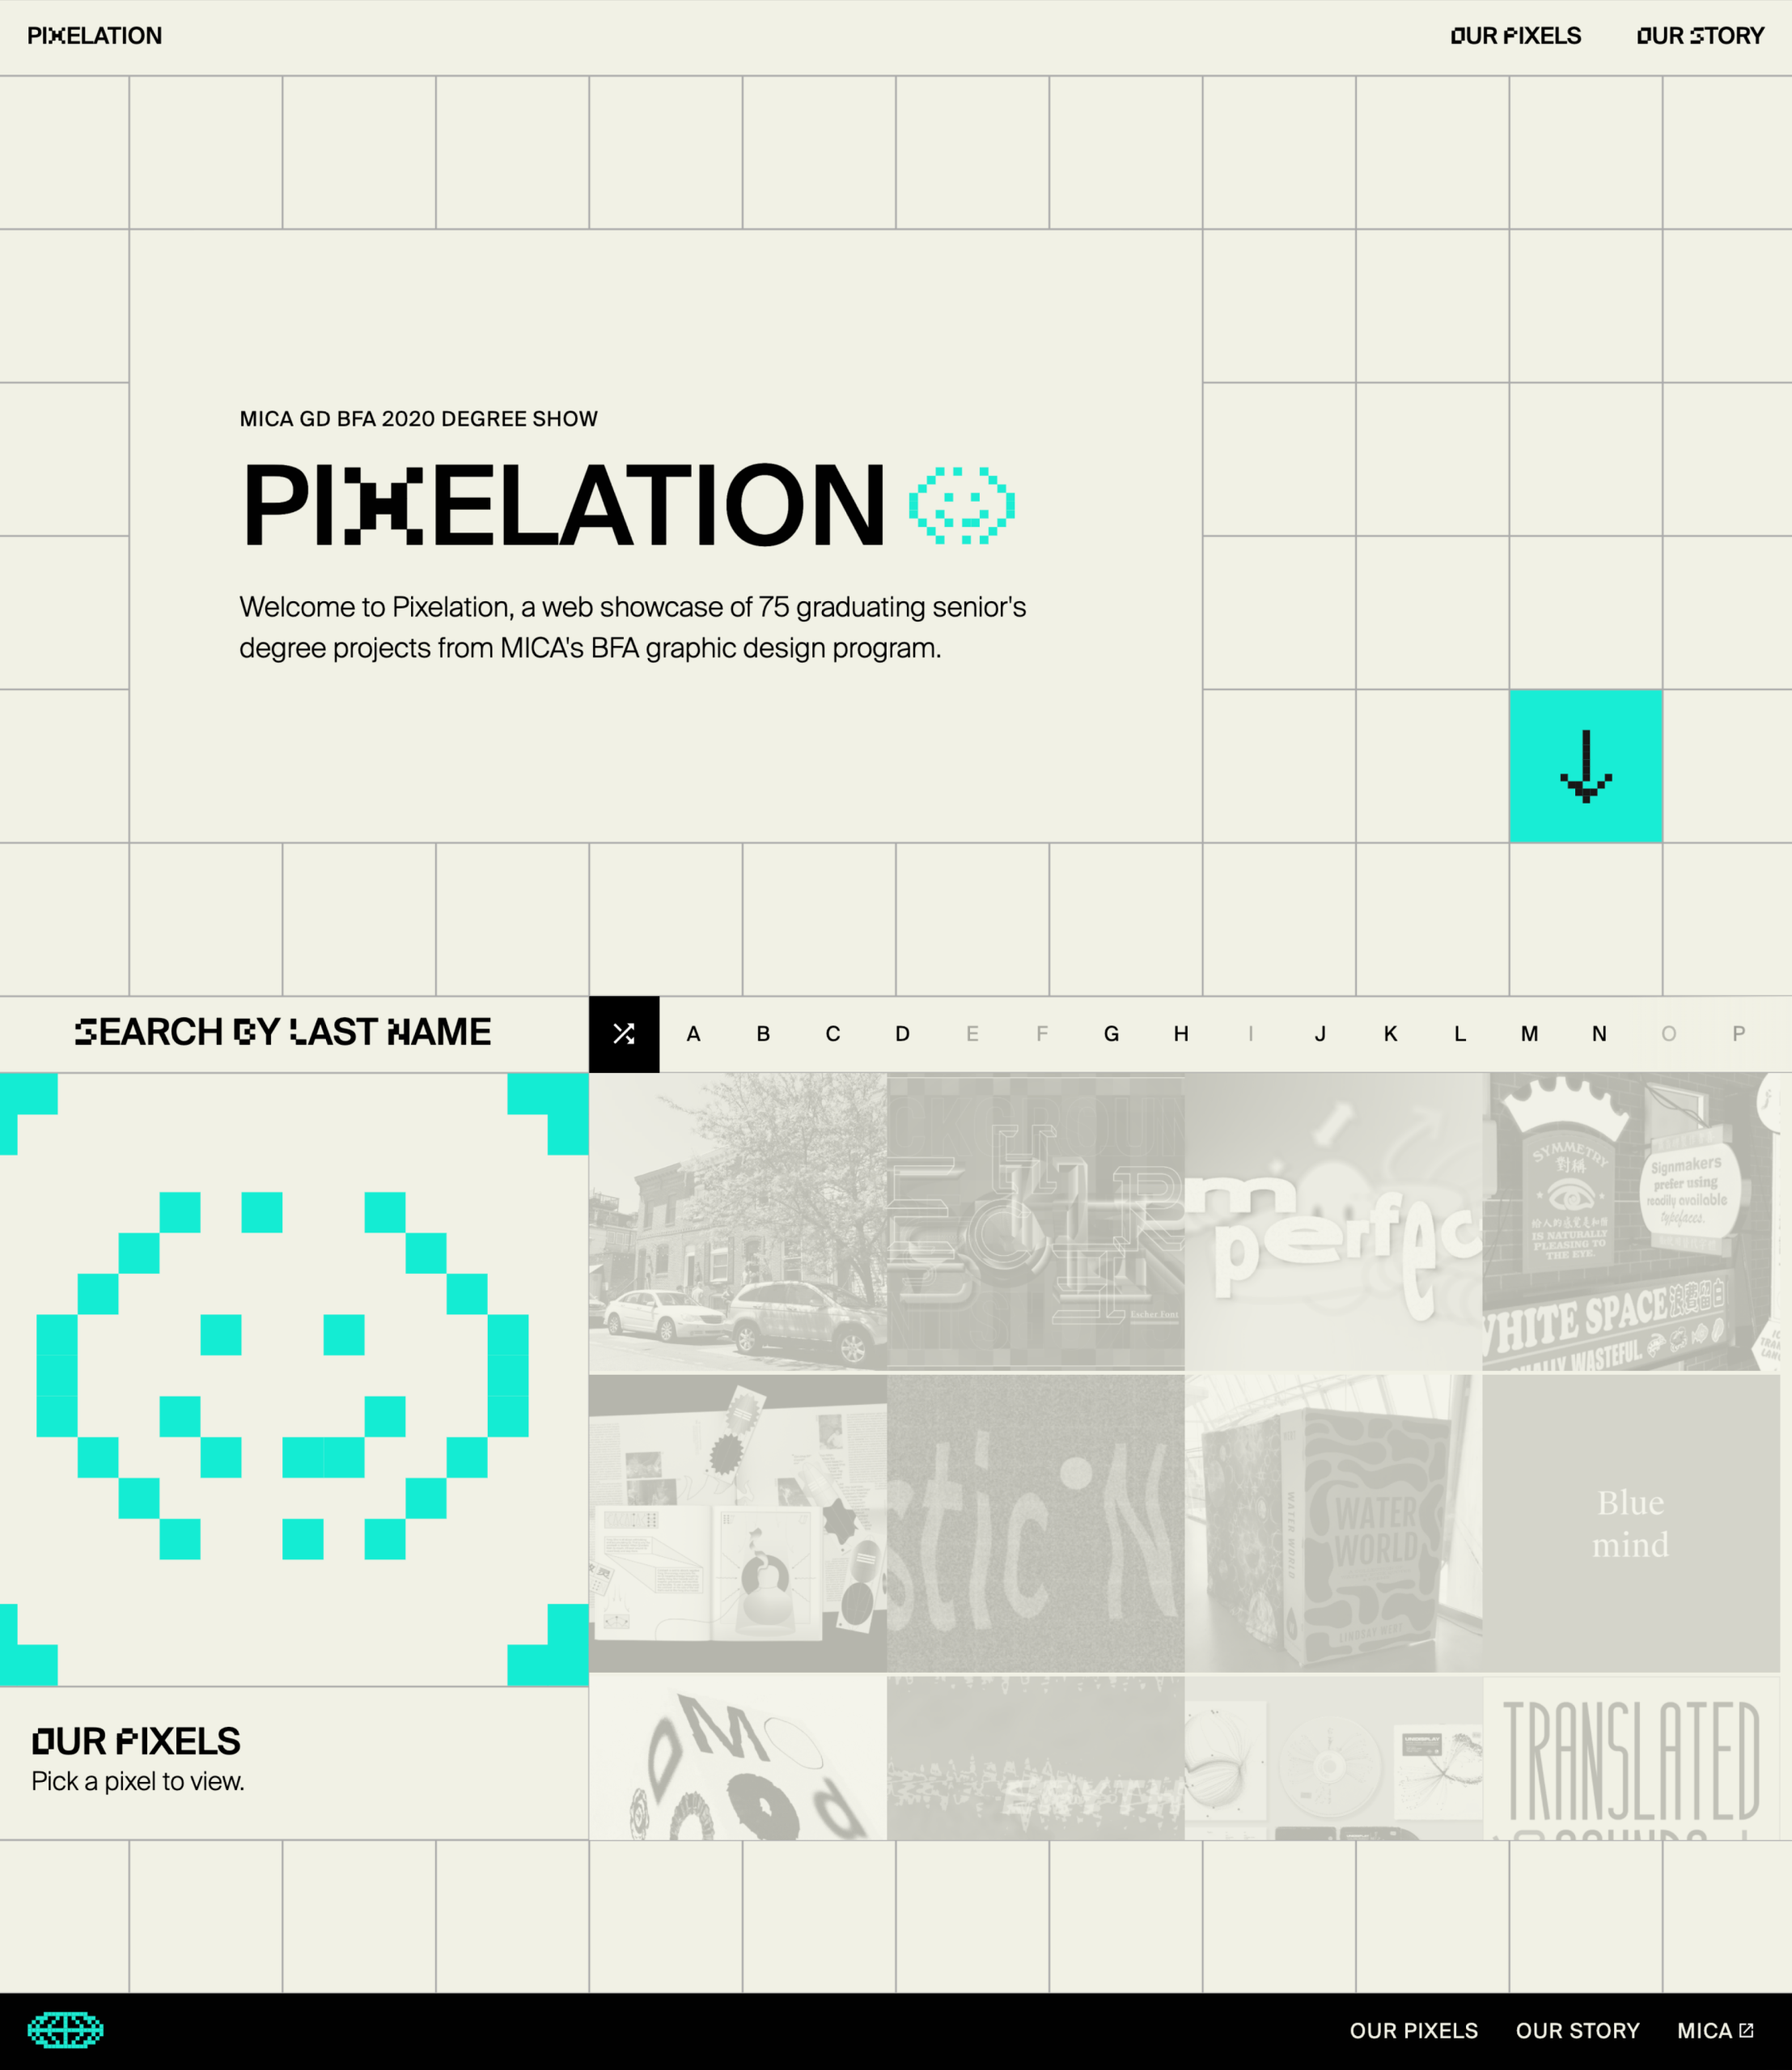 Screeonshot of Pixelation's website